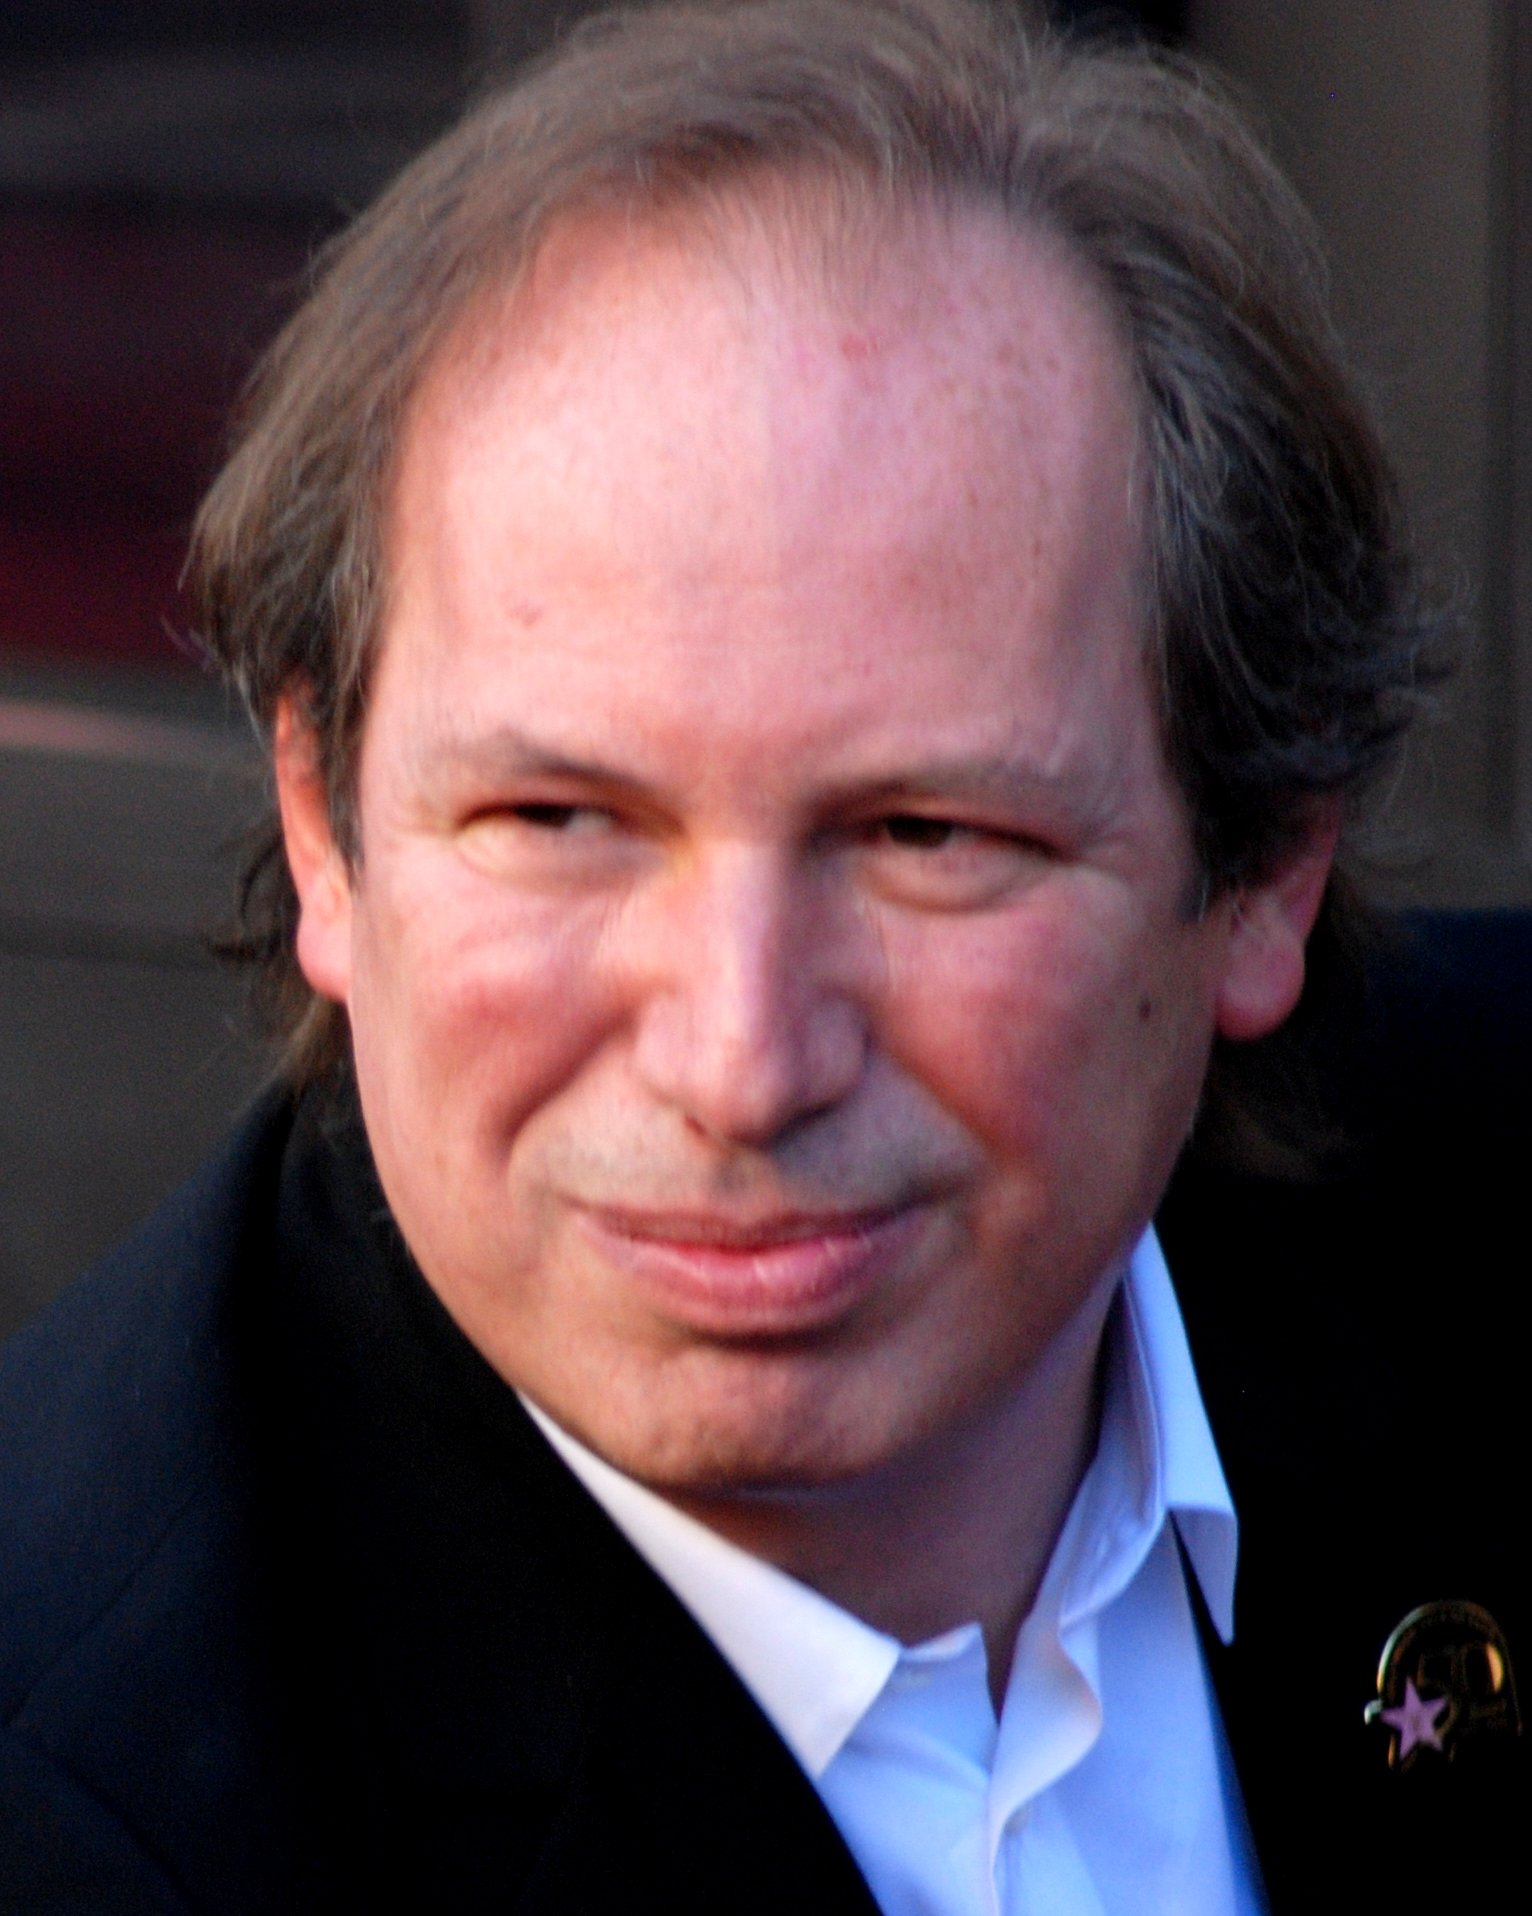 Hans Zimmer earned a  million dollar salary - leaving the net worth at 90 million in 2018